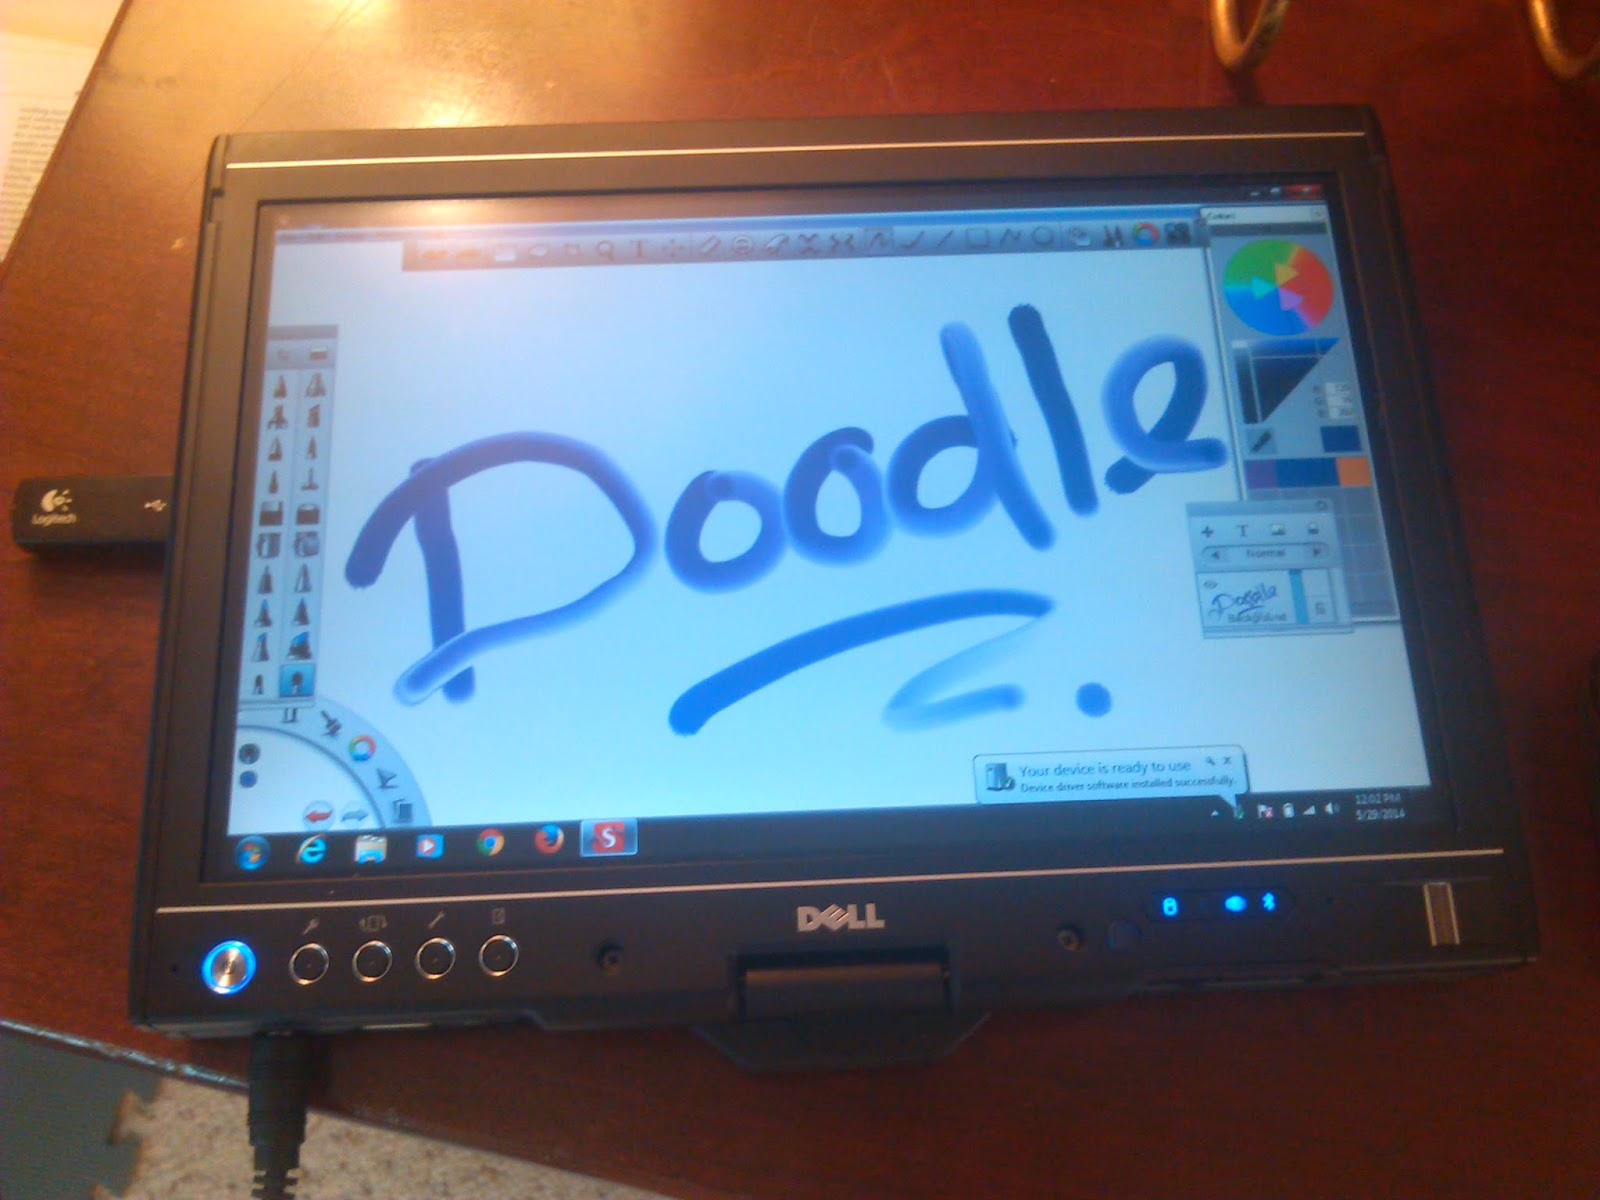 Dell Touch Table for Drawing Illustrations